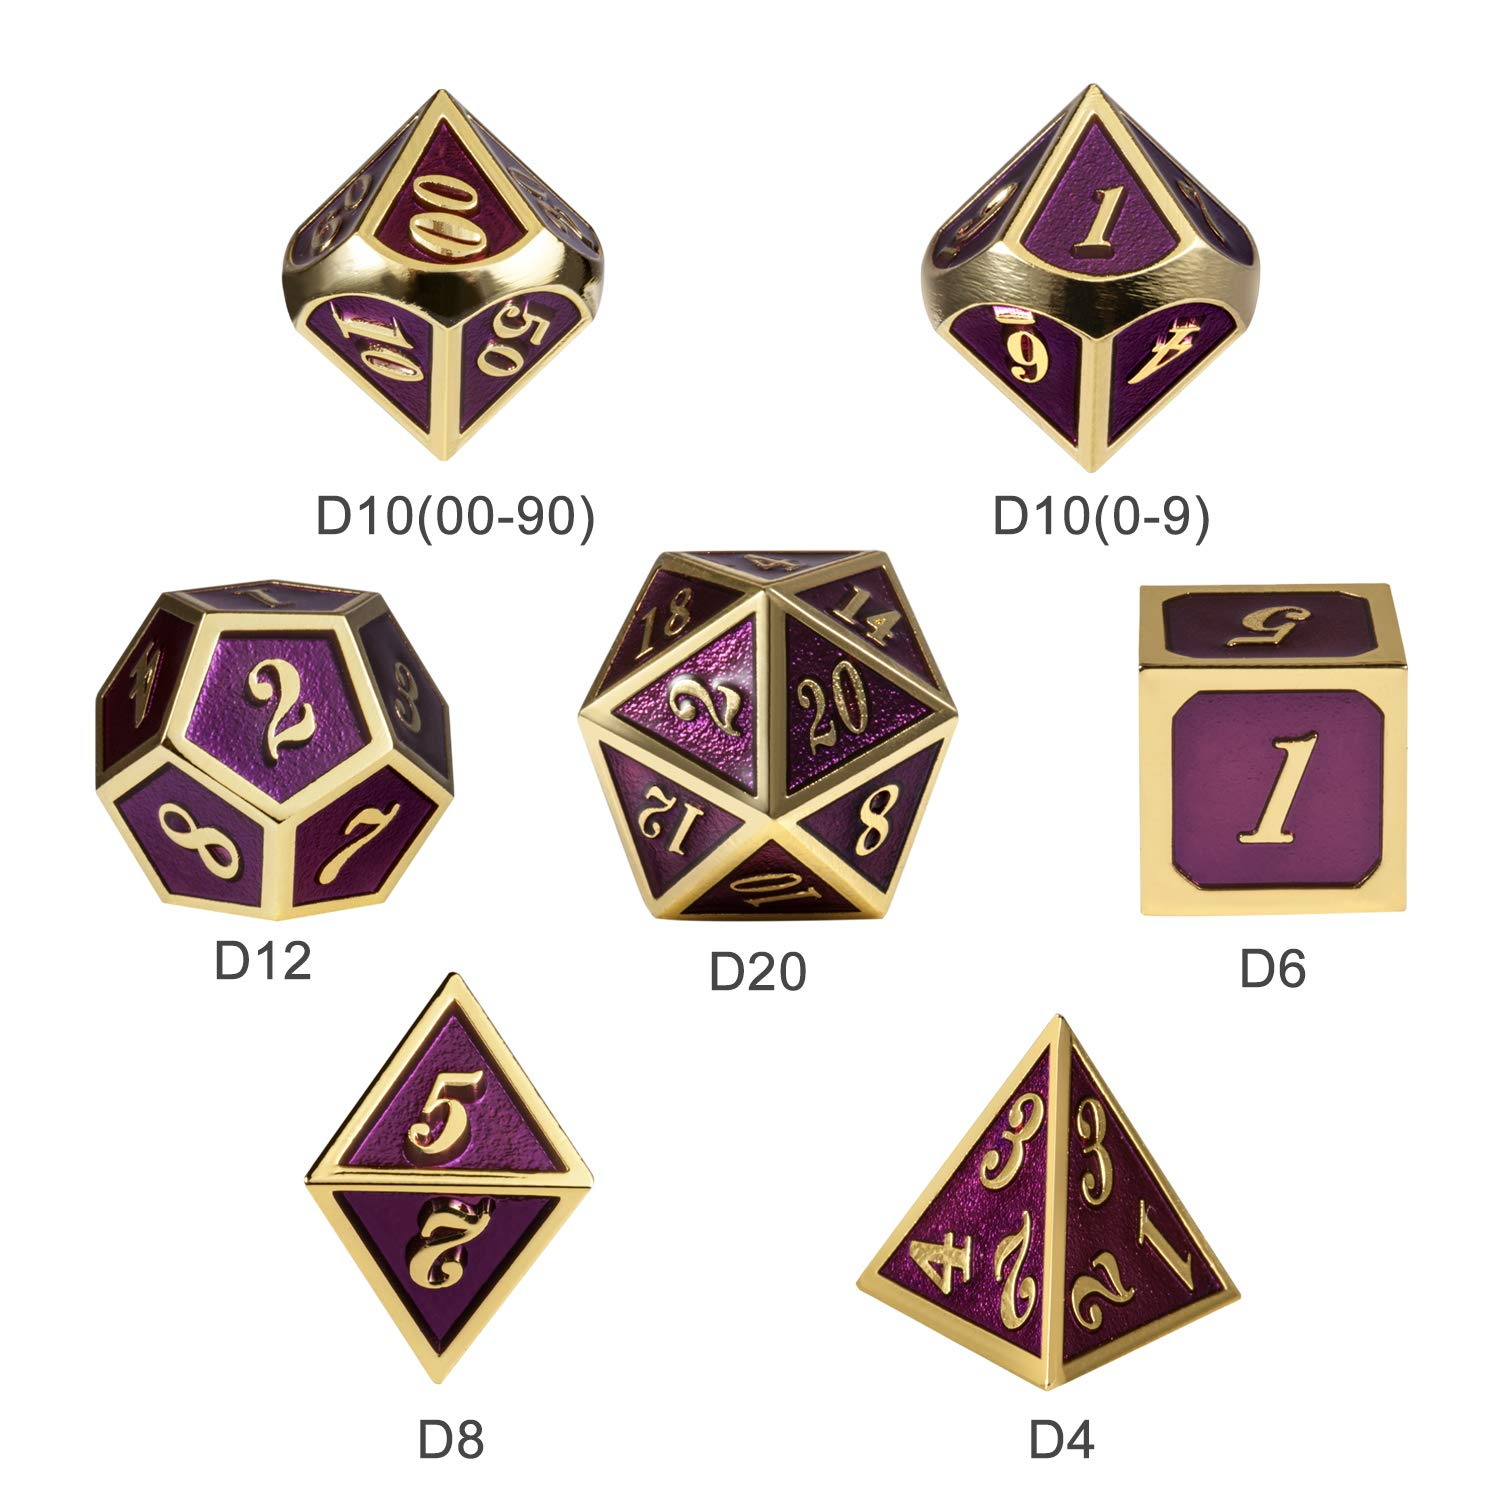 Table Game Metal Dice Set, 7PCS D&D Metal Die with Metal Gift Box for Tabletop Games Dungeons and Dragons Dice (Dark Purple and Gold Number) by DNDND (Image #5)